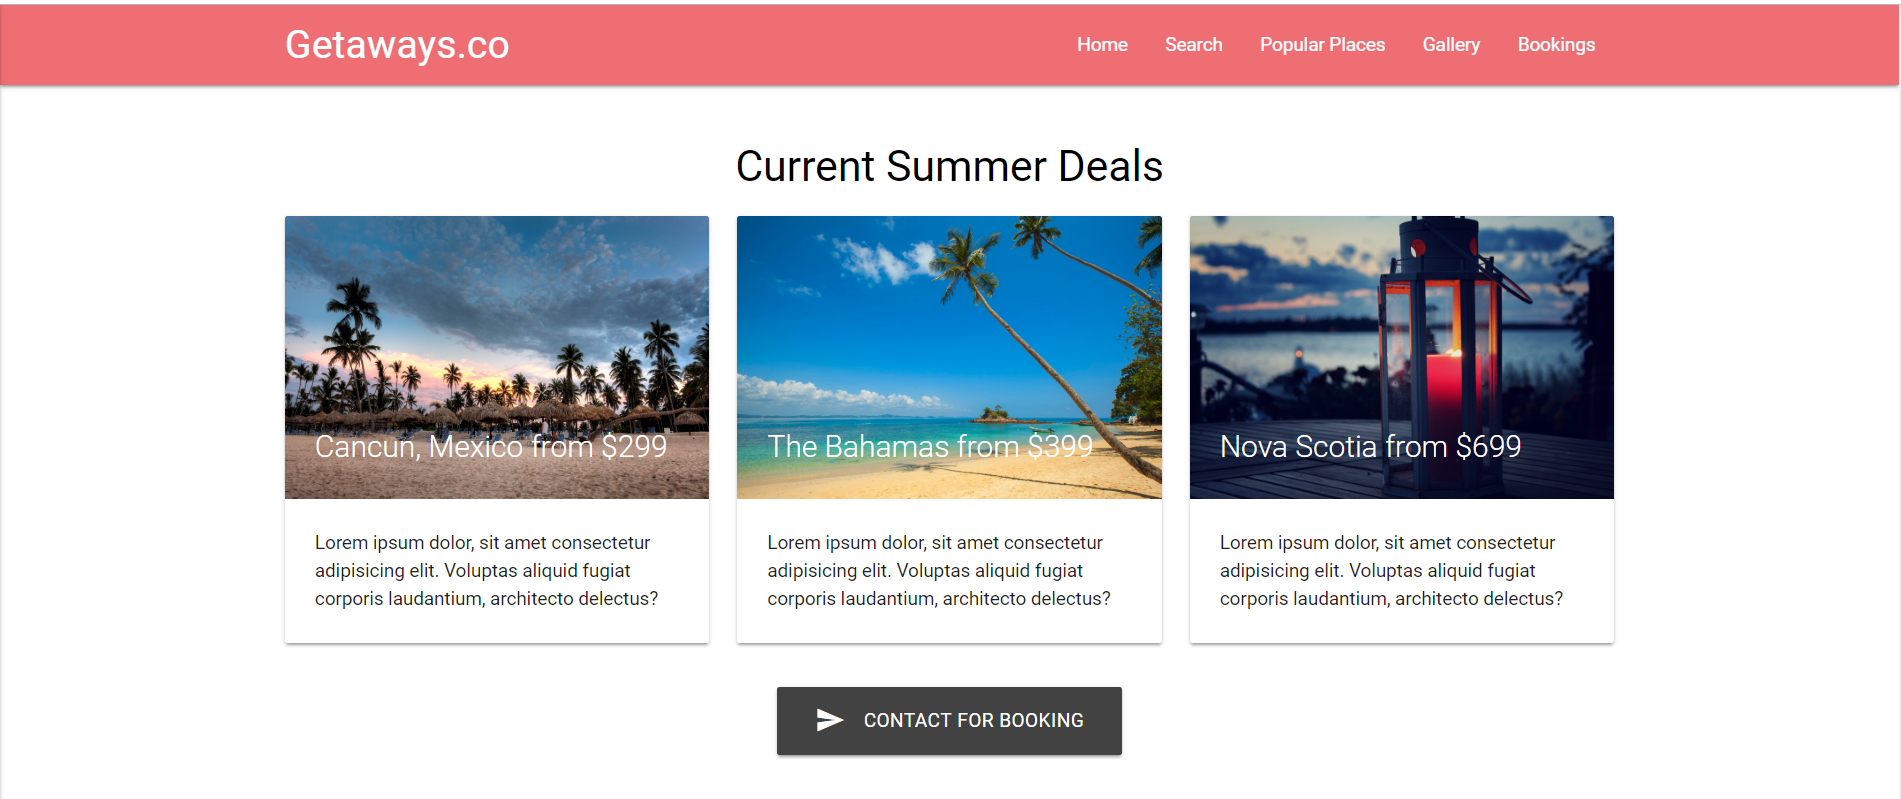 Materialize-css-Travel-Agency/README md at master